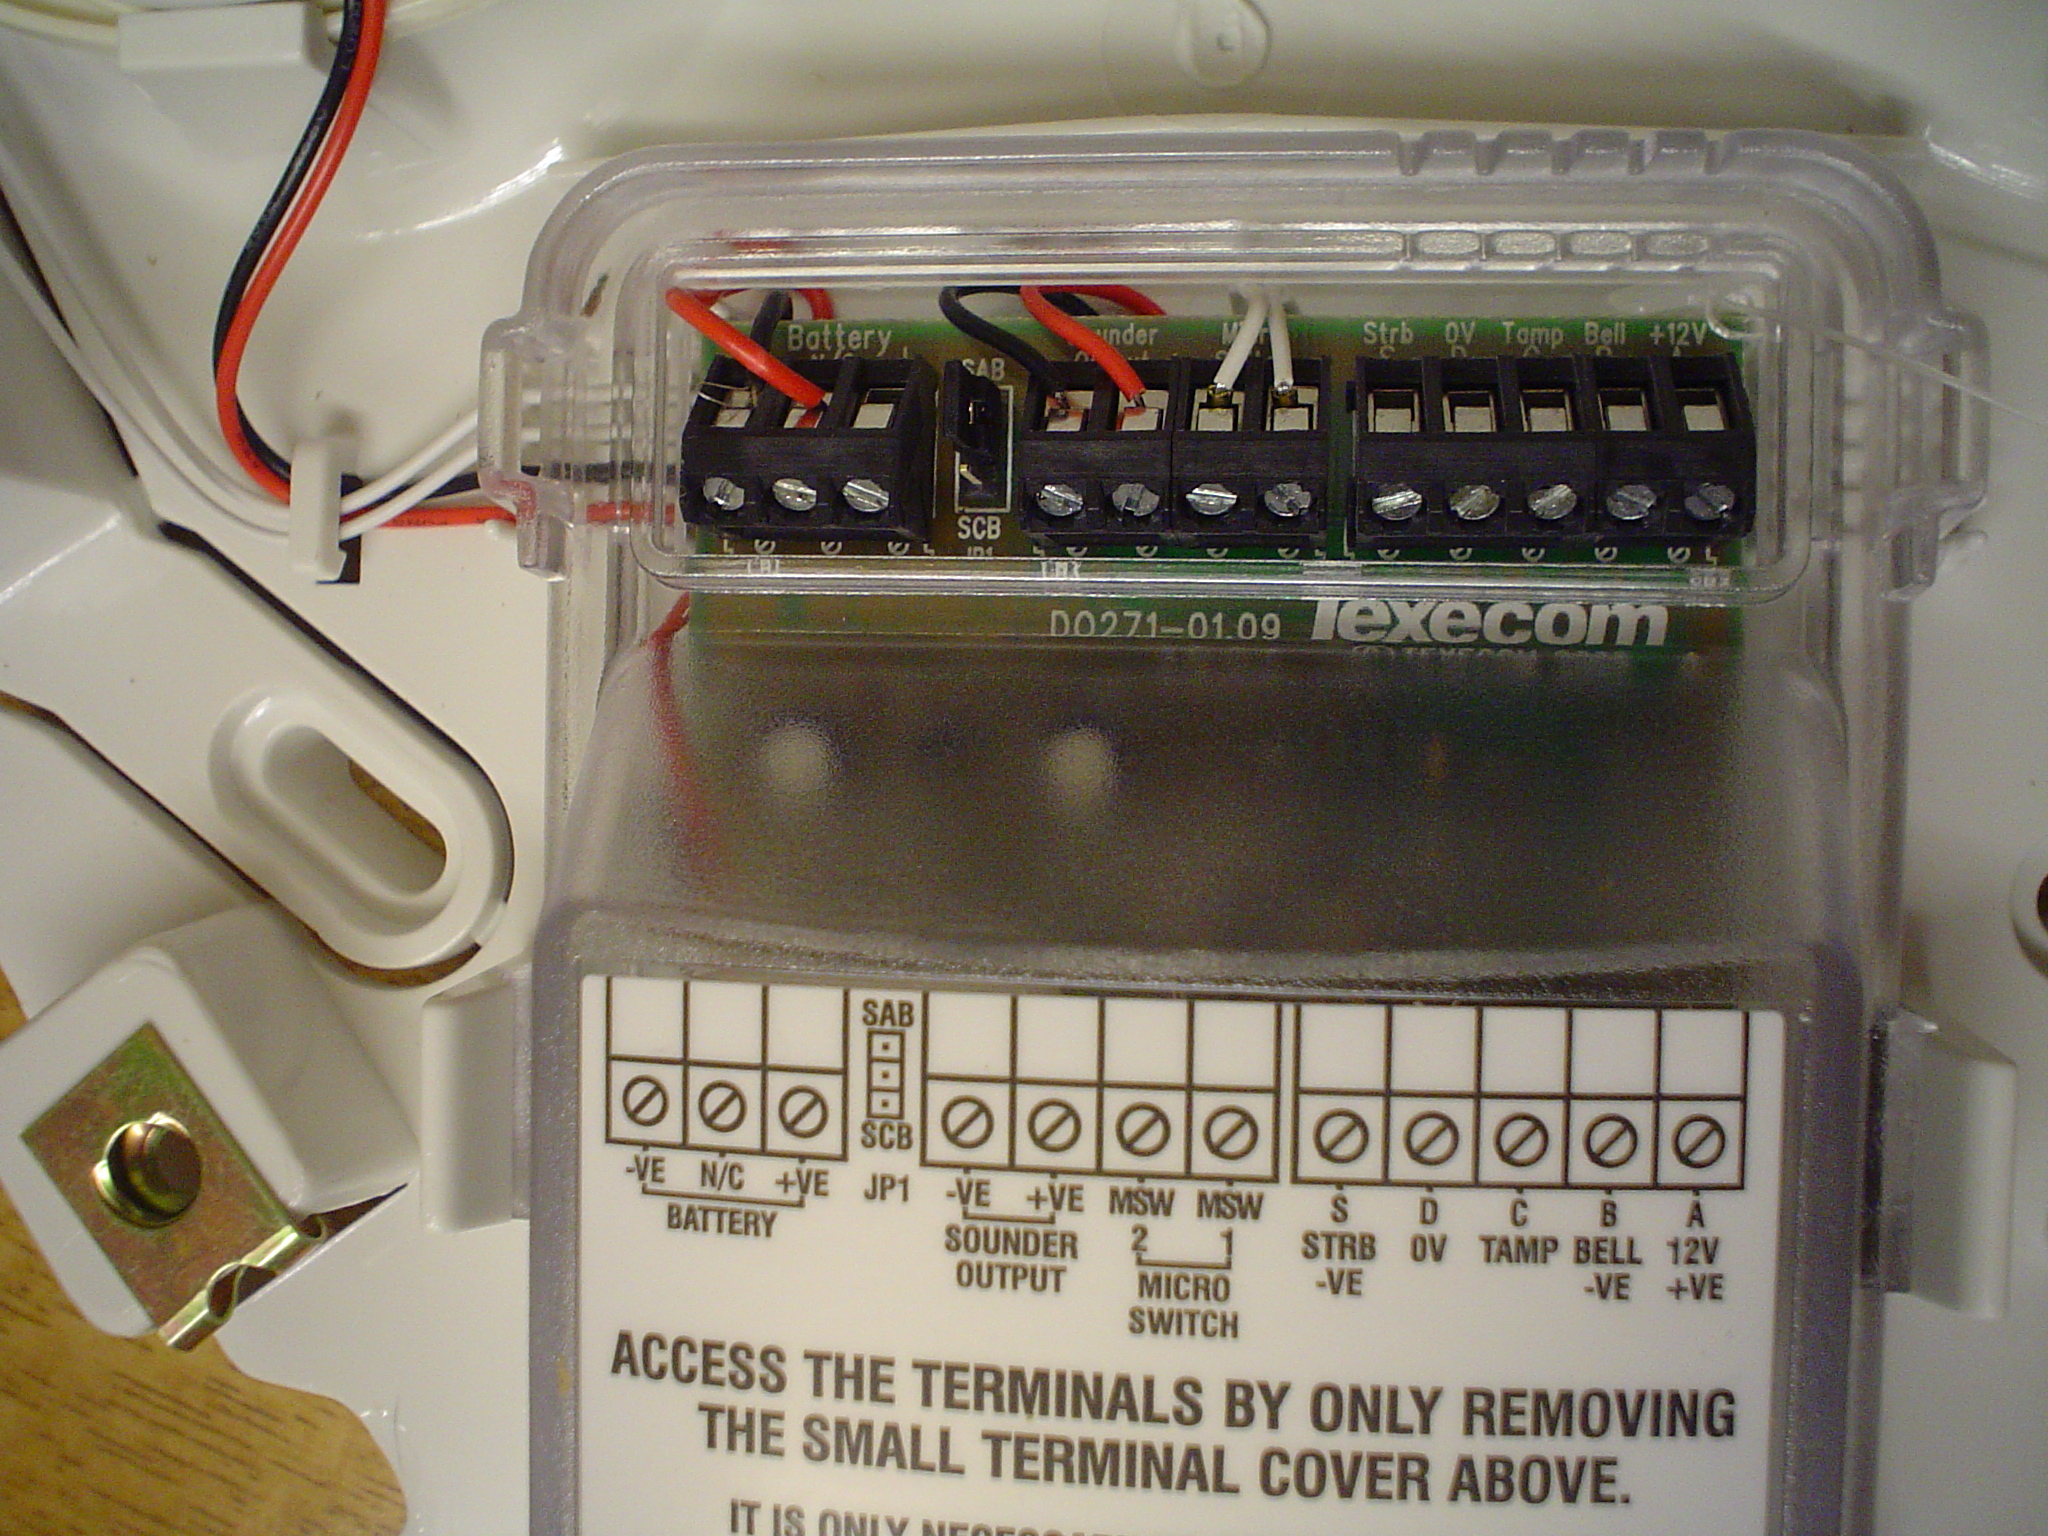 Wiring Diagram For Alarm Bell Box : Help installing a texecom odyssey bell box diy